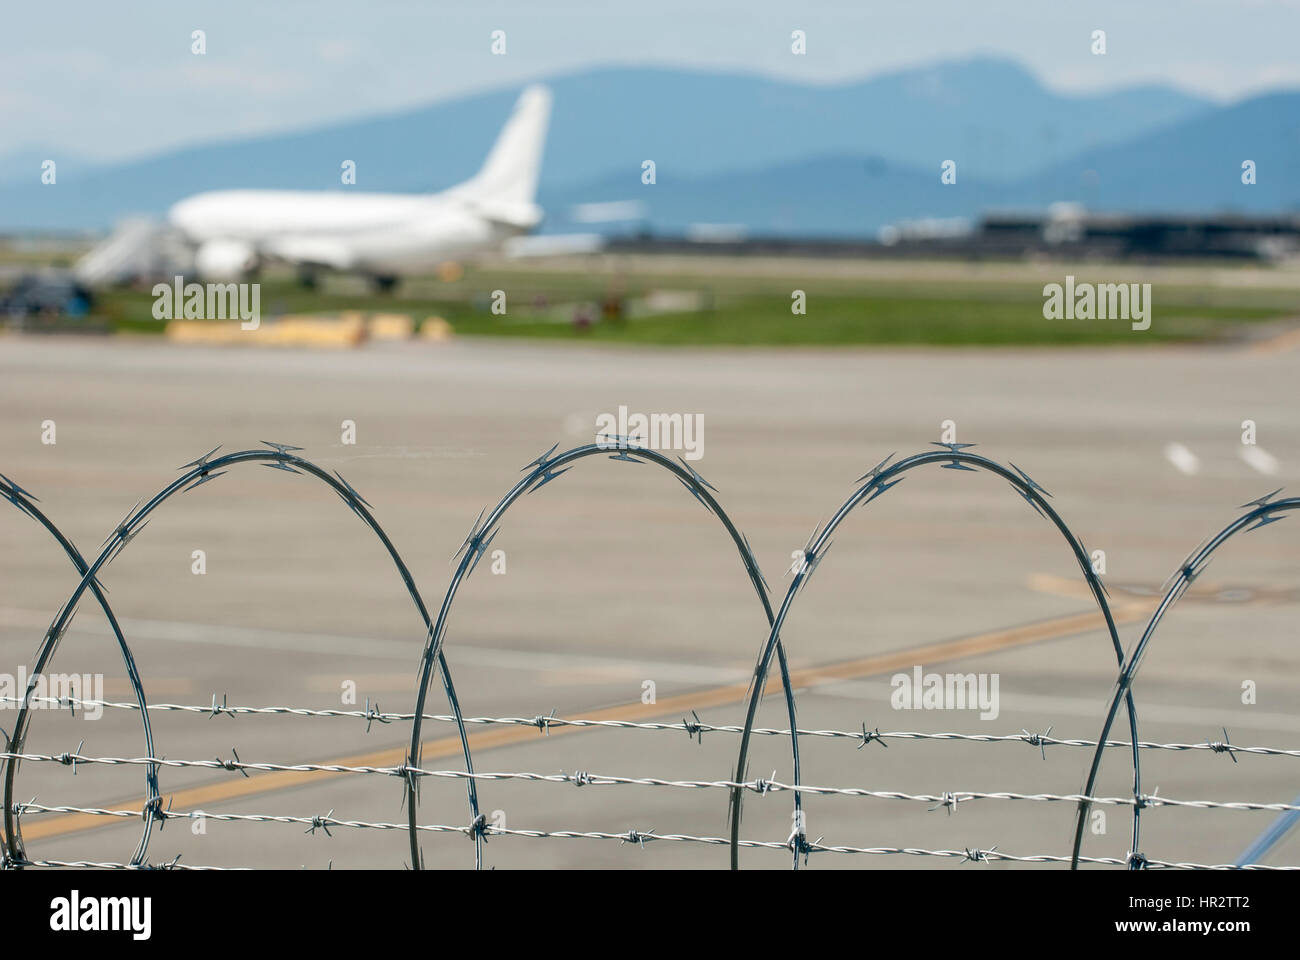 Razor wire used as airport security. Stock Photo